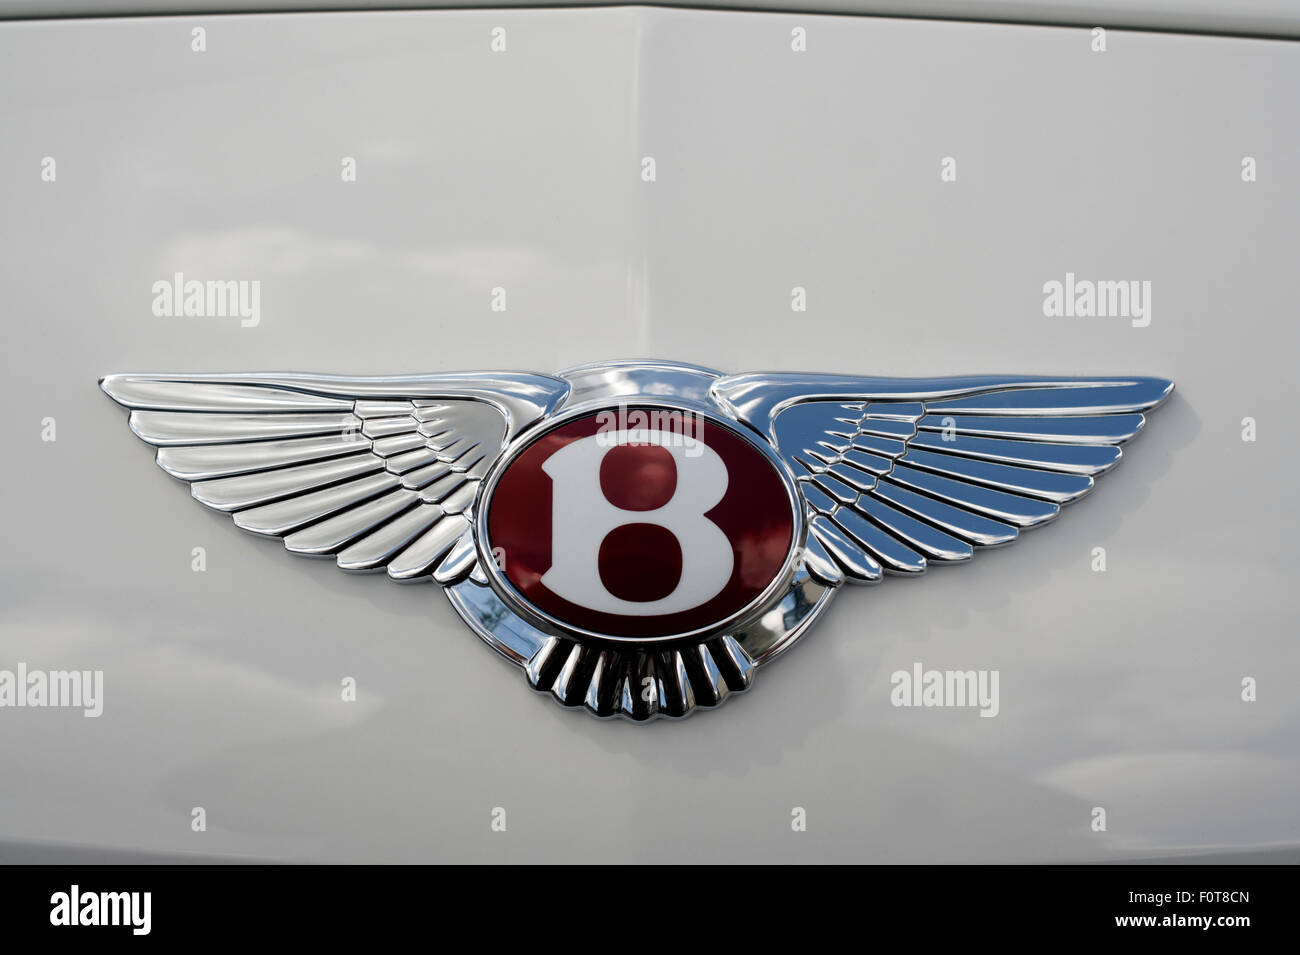 Close-up of a winged Bentley motors insignia on a white Bentley luxury car - Stock Image